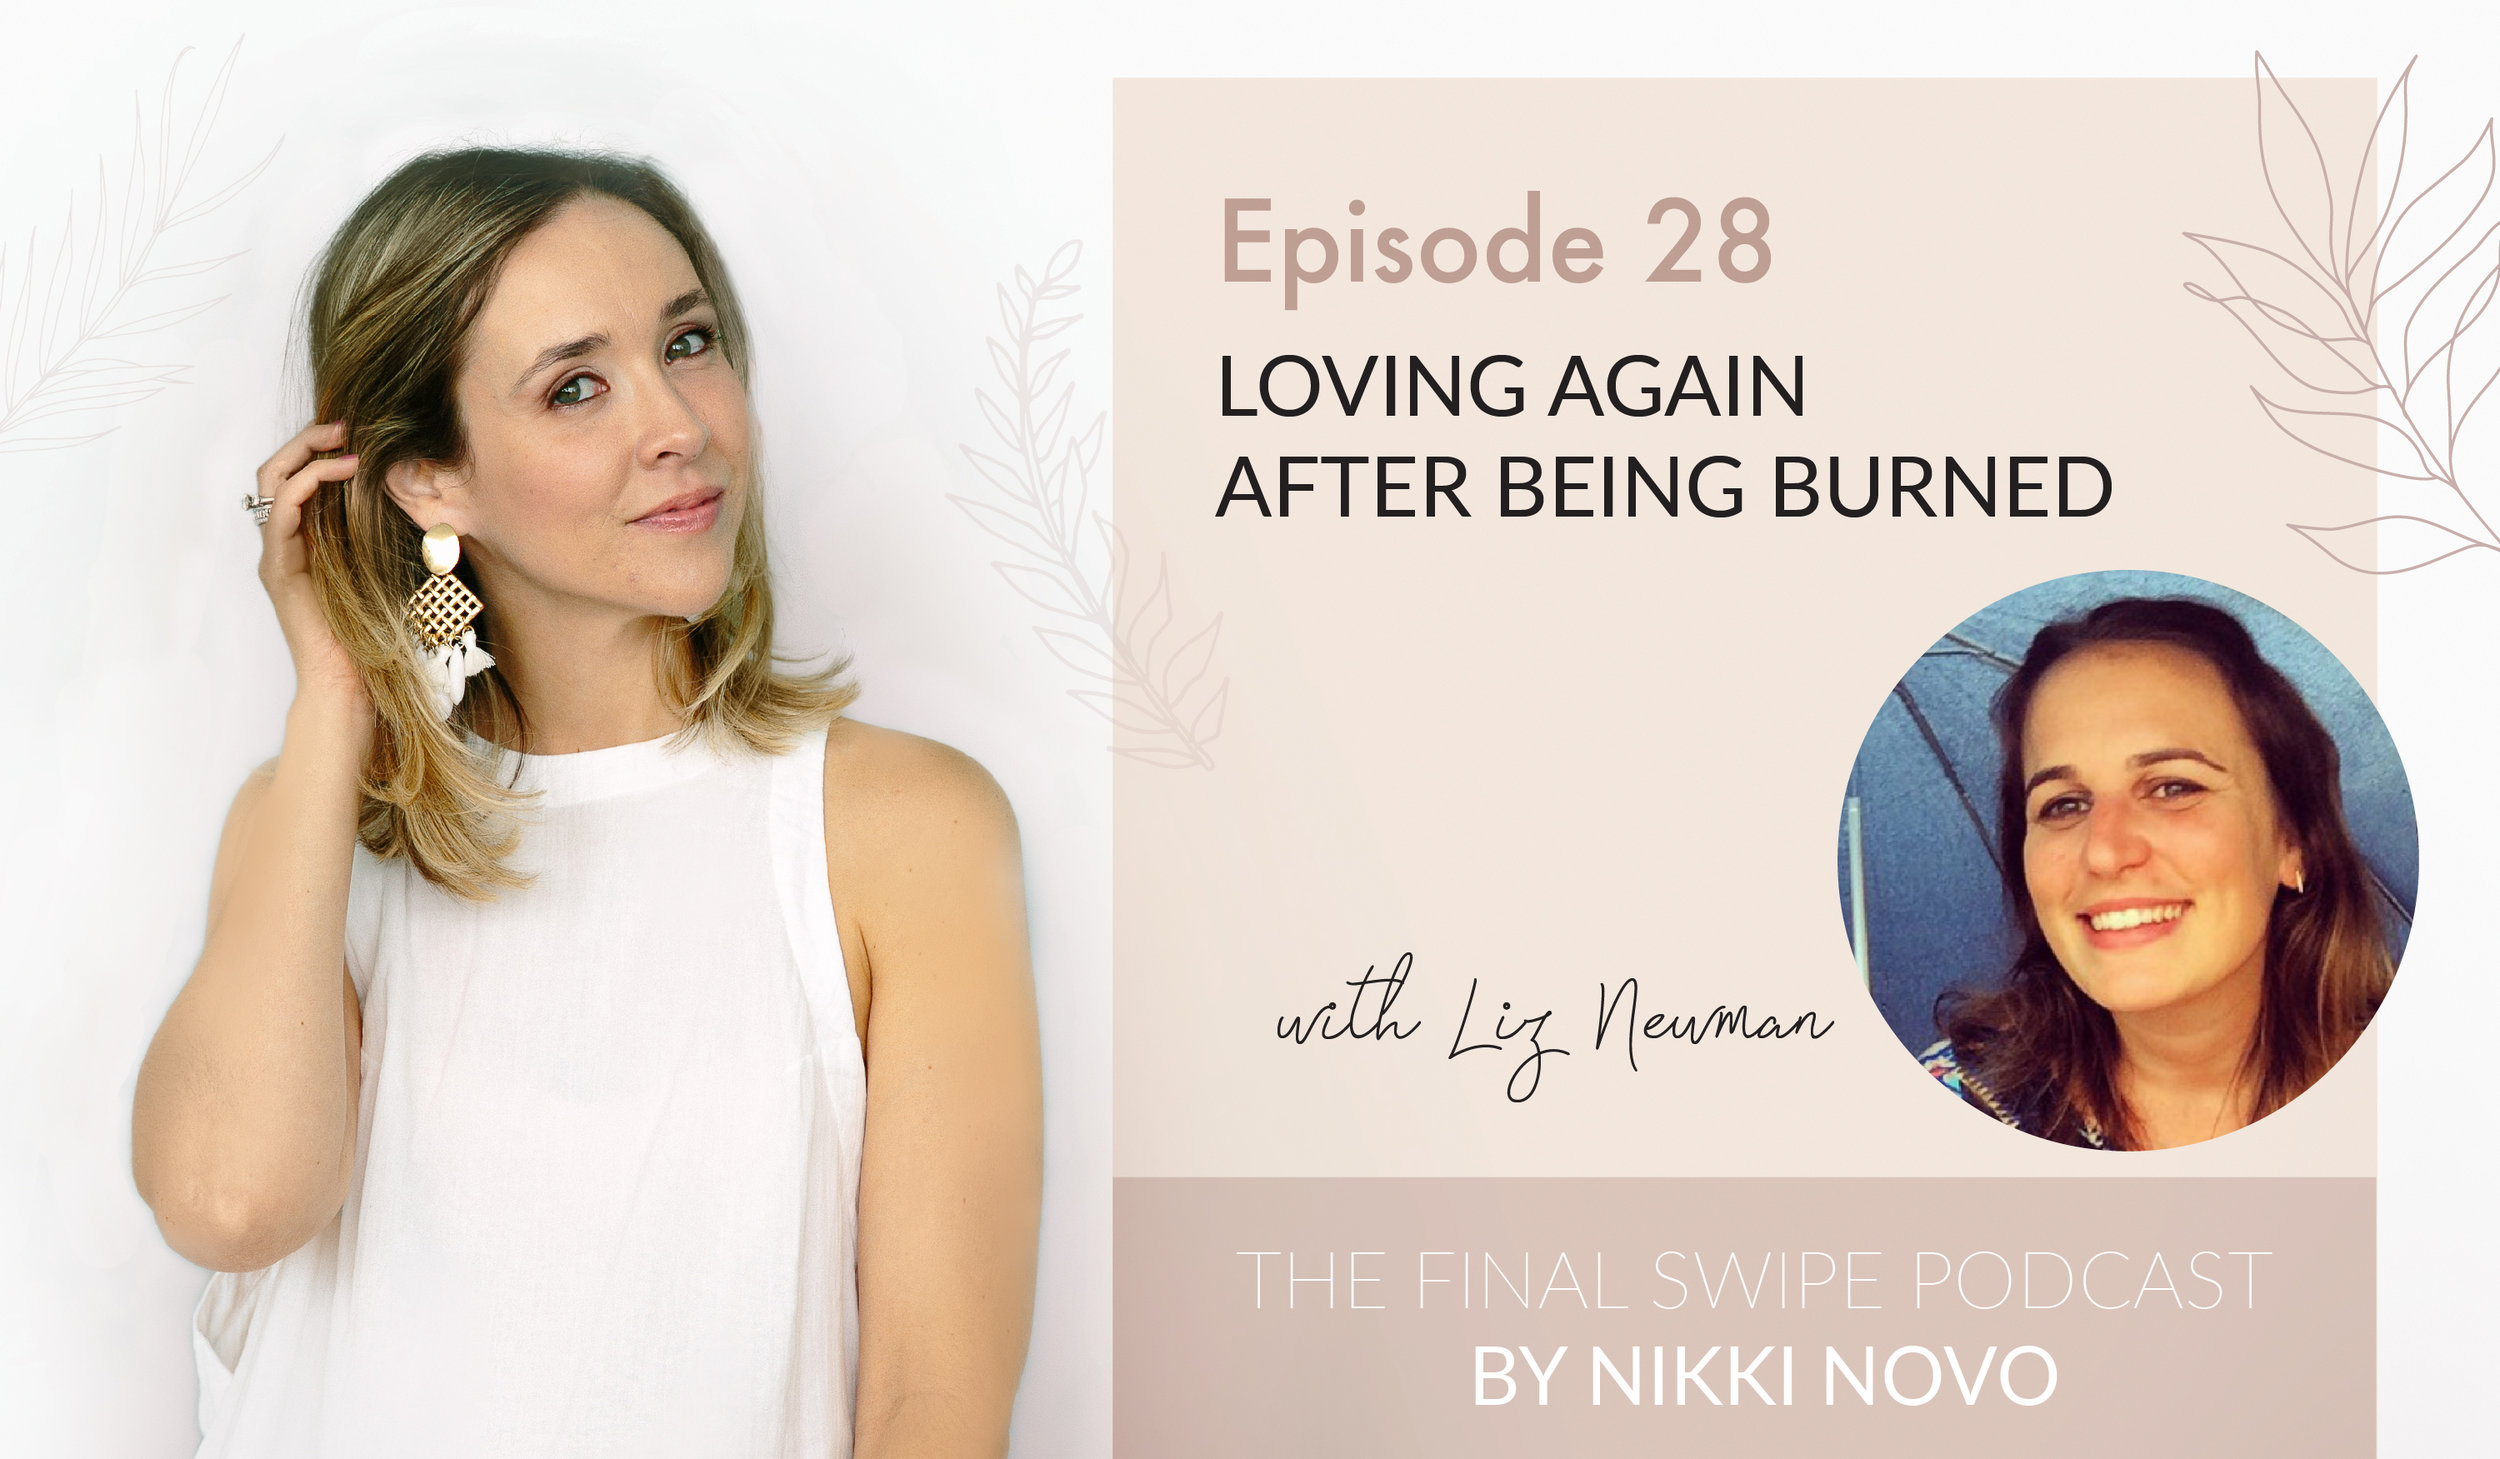 Dating-Podcast-Loving-Again-After-Being-Burned.jpg